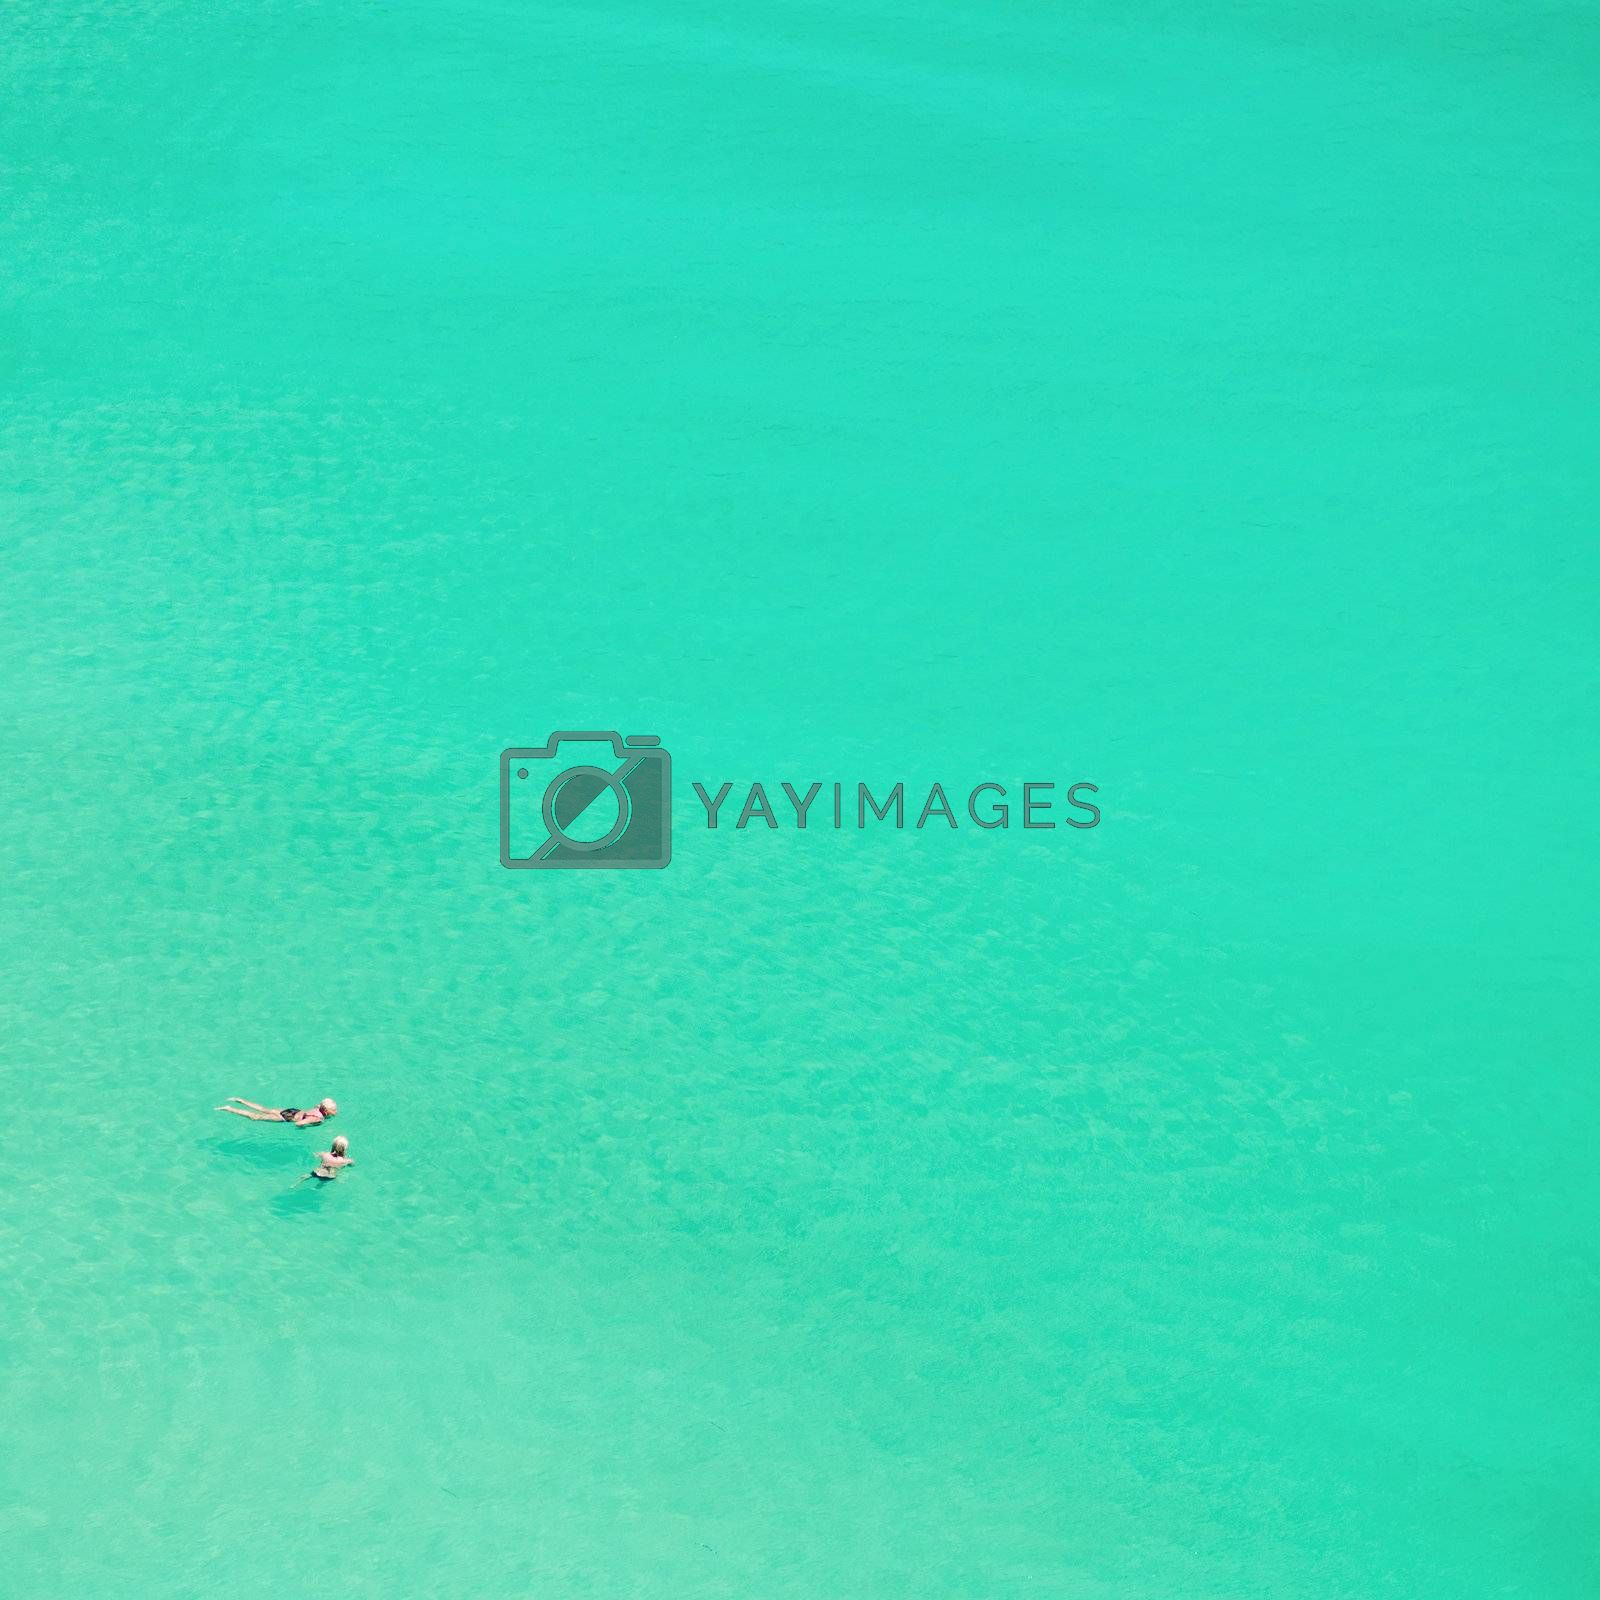 Two persons are swimming in the clear sea